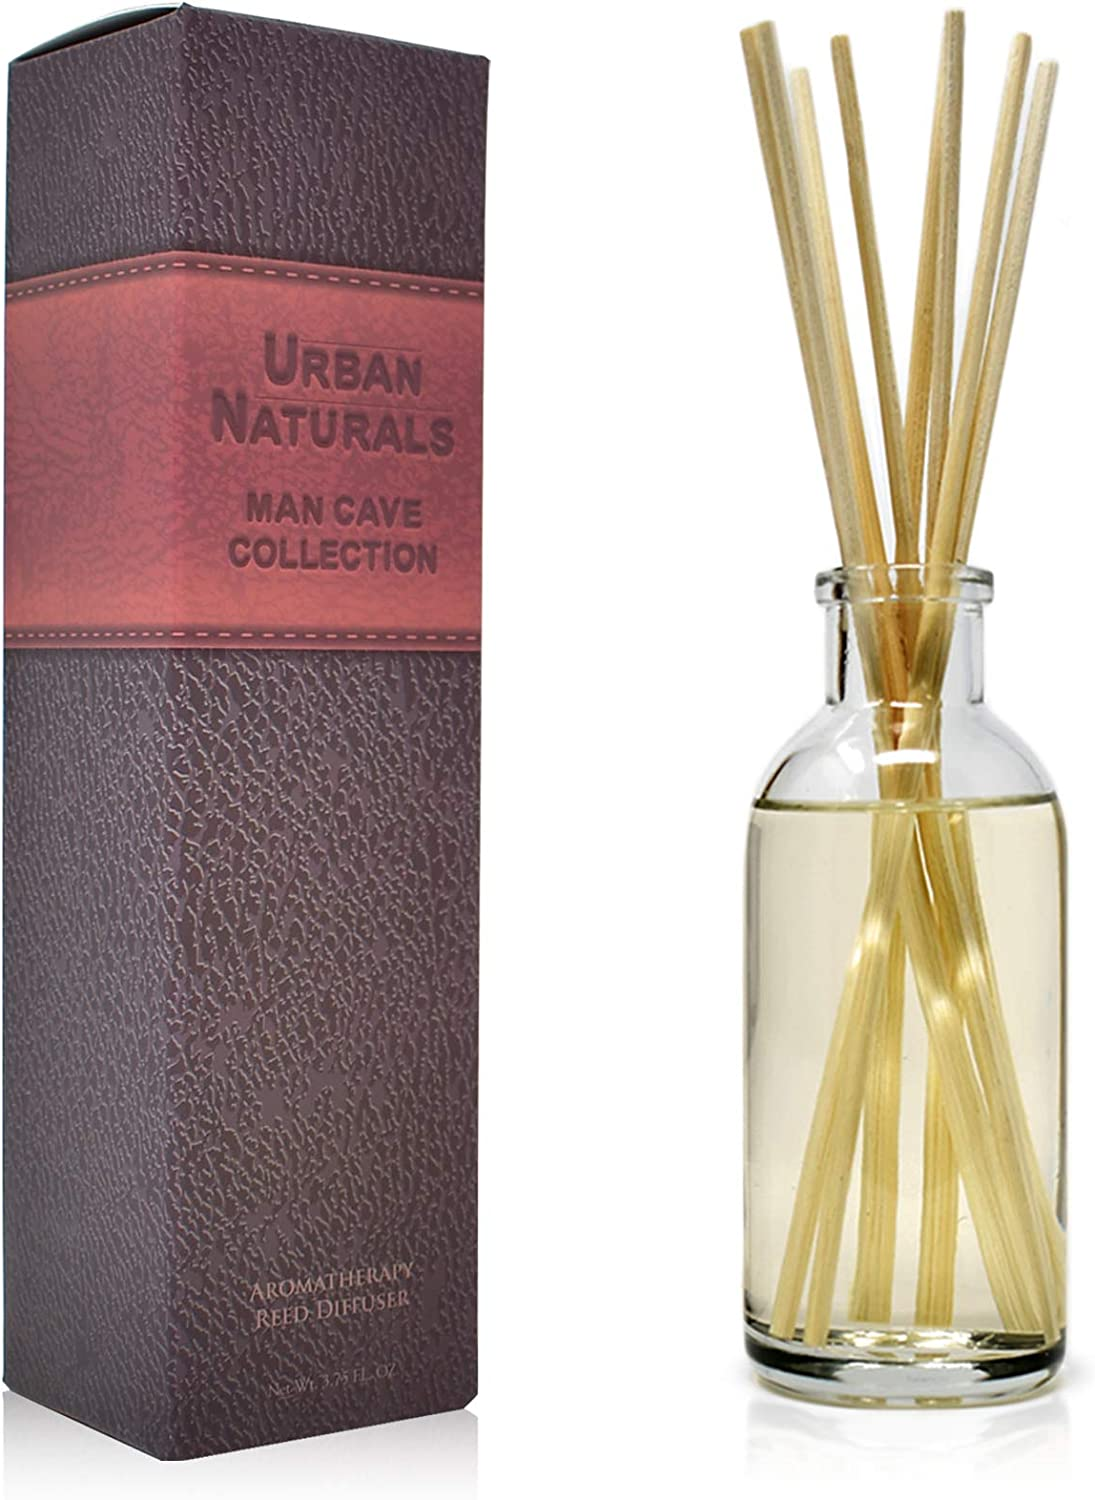 Urban Naturals Leather Mahogany Reed Diffuser Oil Set with Reed Sticks – Masculine Blend of Smoky Bergamot, Leather, Spice, Amber and Wood - Made in The USA